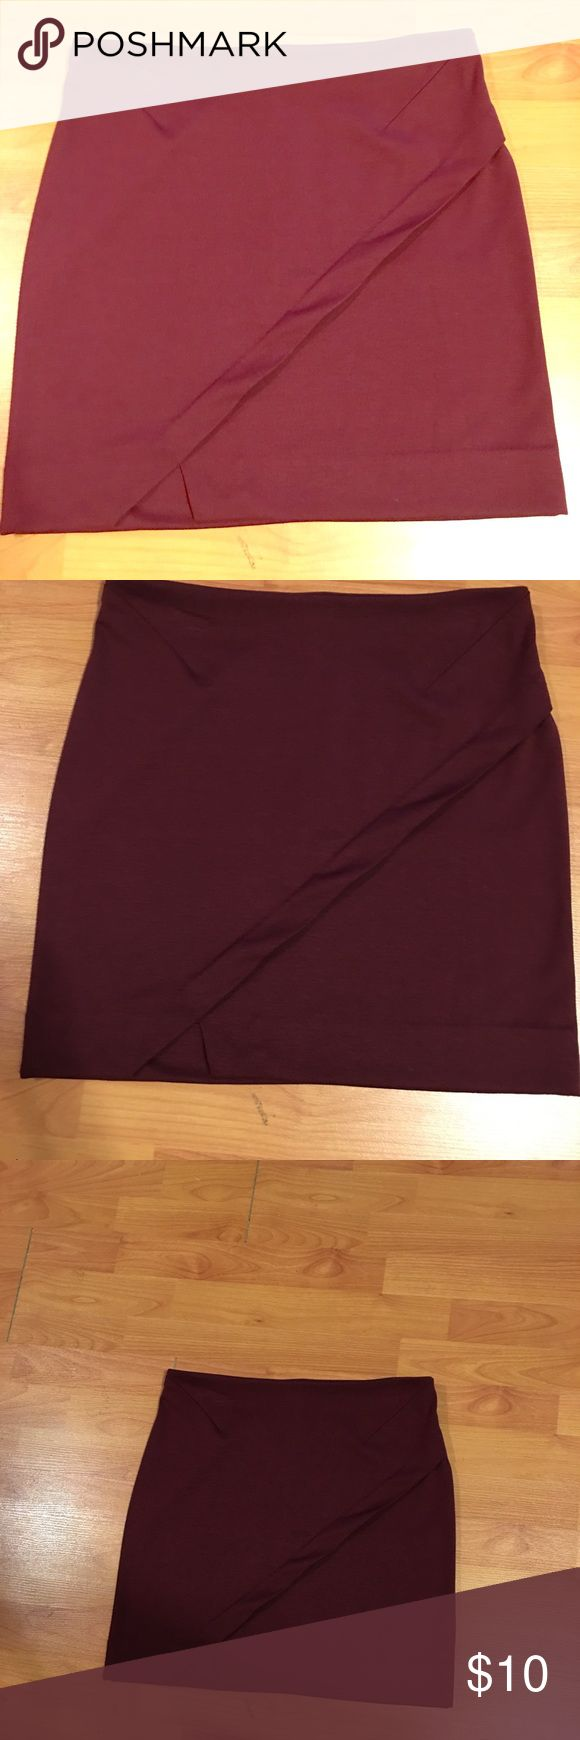 Burgundy mini skirt Perfect fall colored skirt! It can be paired with tights or worn without. I am 5'5 and this skirt comes right above my knees. It can be worn at the office or on a night out. I've worn it only once for a dress up day at work. It has a stain on the inside of the skirt, but not visible on the outside. Metaphor Skirts Mini #nightoutskirt